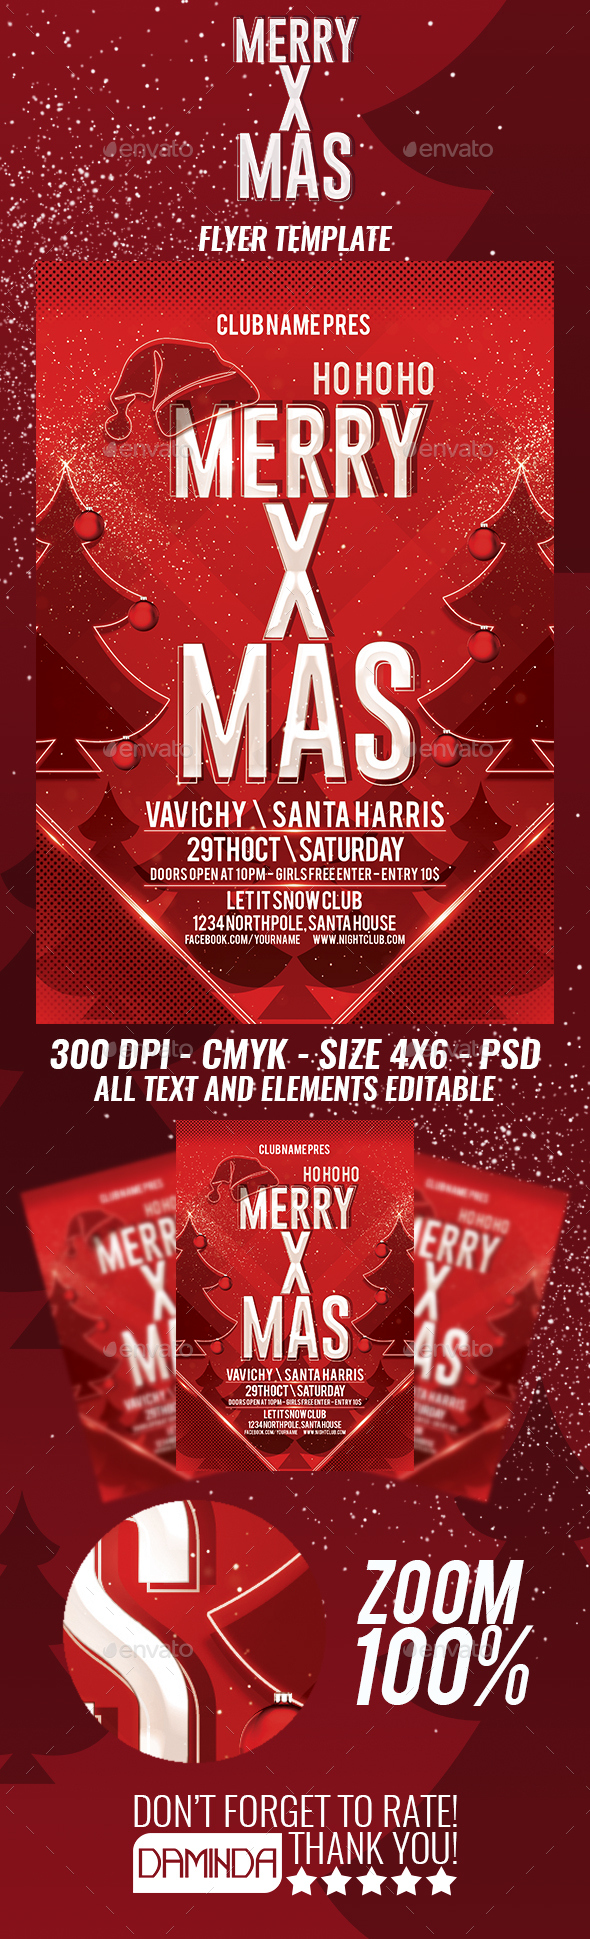 Merry X Mas Flyer Template By Daminda Design Graphicriver